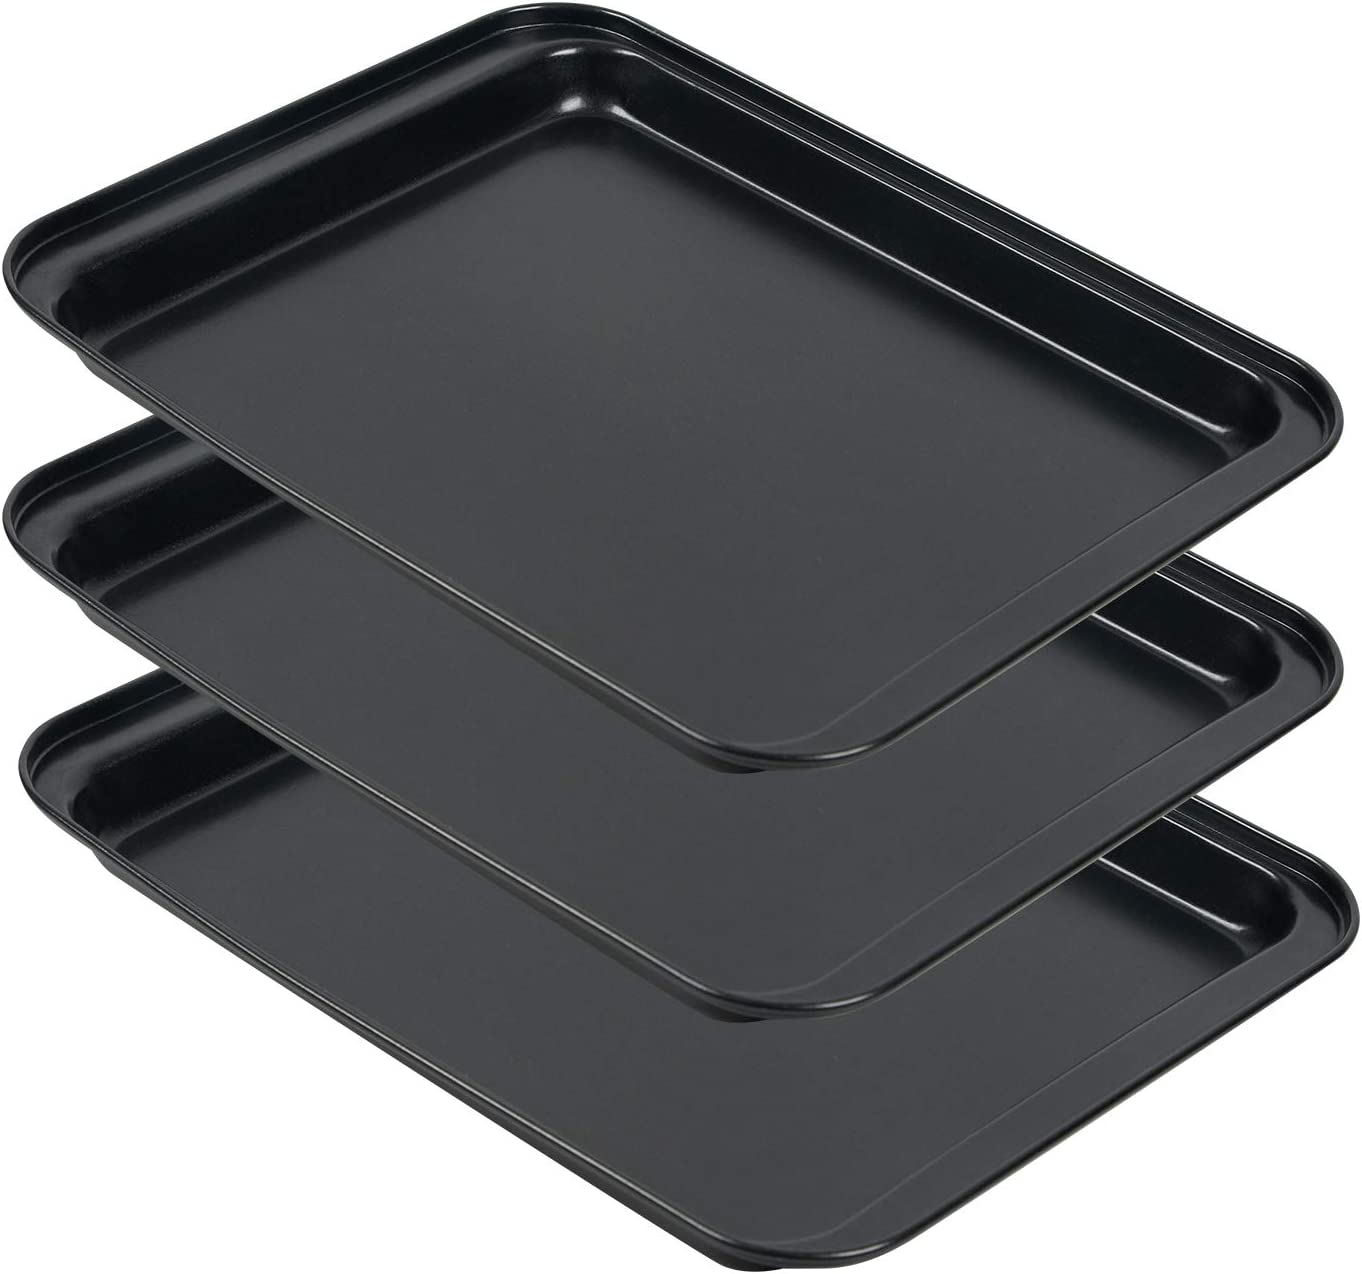 Baking Sheets For Oven, 3PCS Nonstick Cookie Sheet Pans, Carbon Steel Mini Oven Pan Sets w/Rimmed Border for Baking, Small Baking Trays for Toaster Oven Replacement, Easy Clean, Dishwasher Safe